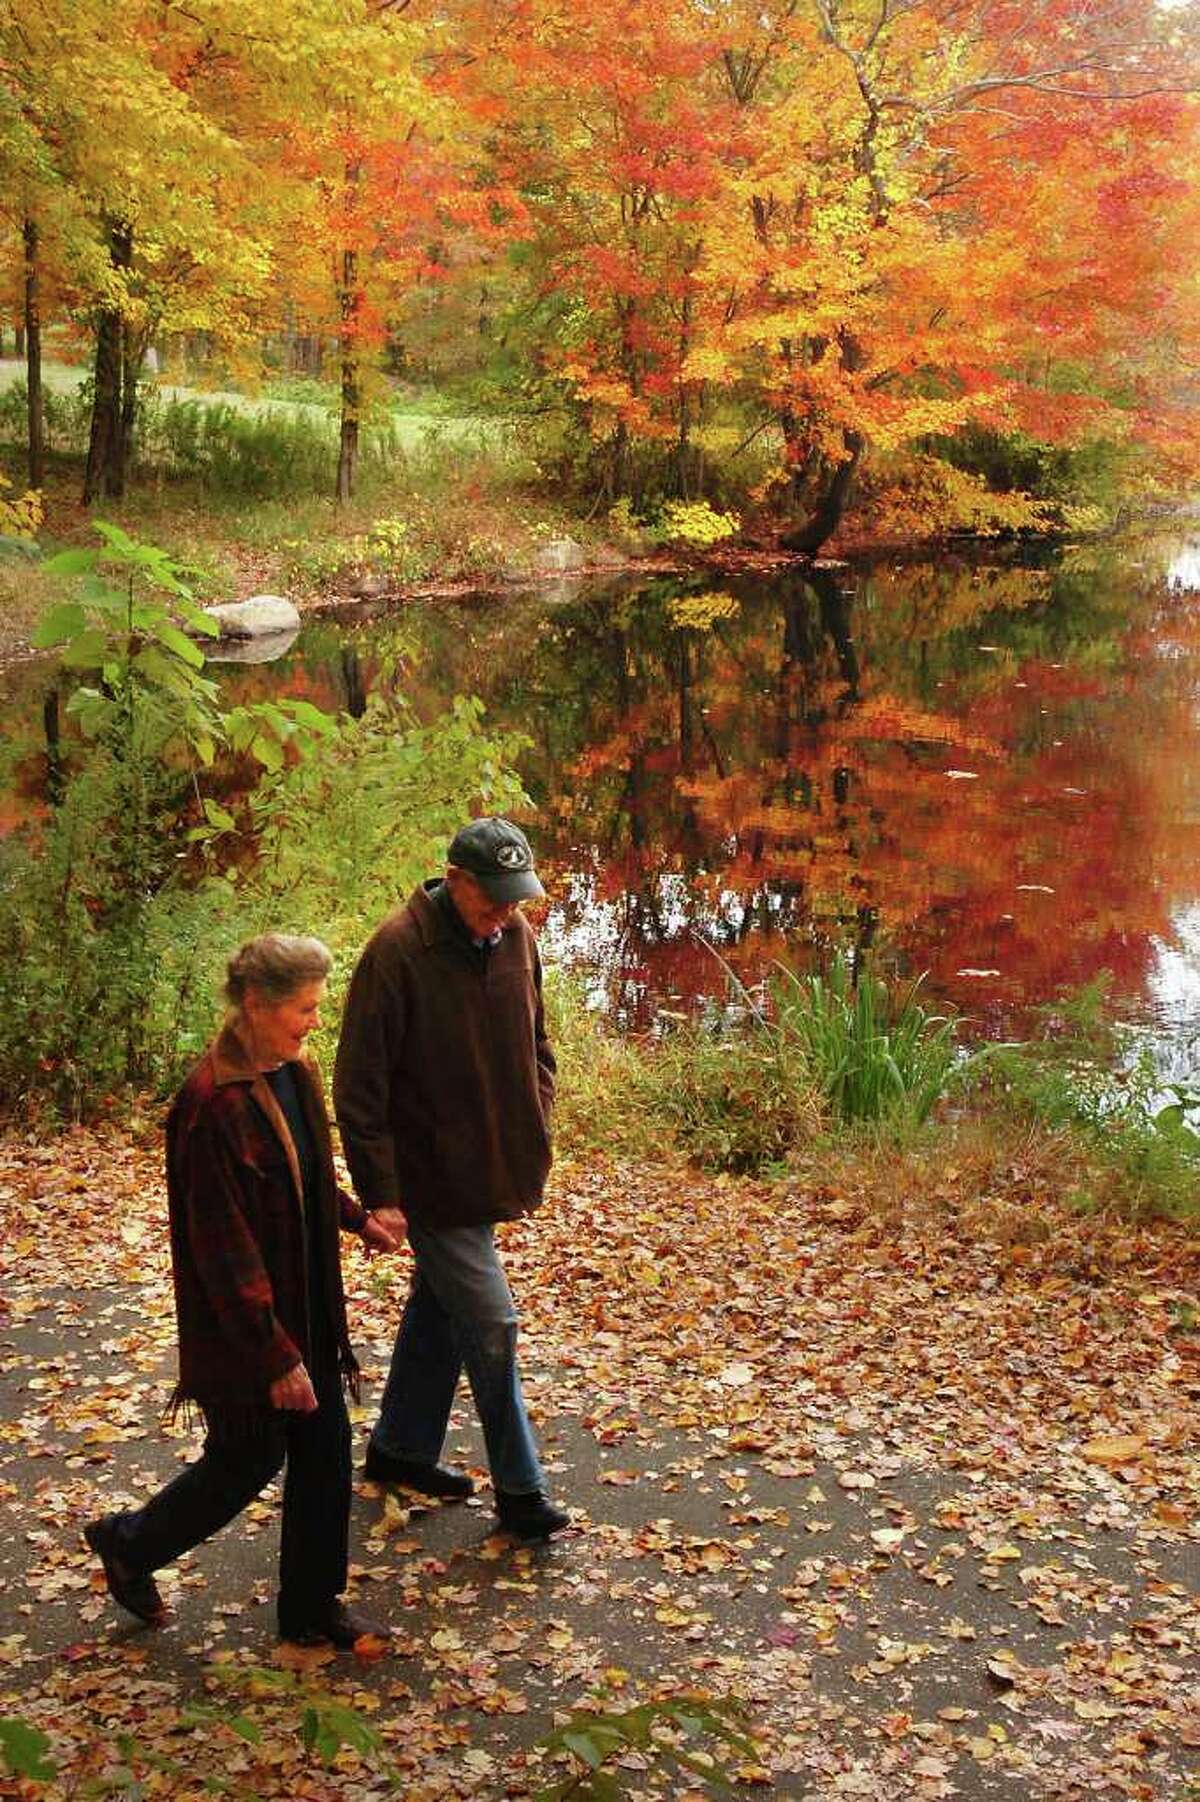 Muriel and Jean Bowen, of Trumbull, walk through Twin Brooks Park in Trumbull, Conn. Monday, Oct. 25th, 2010.